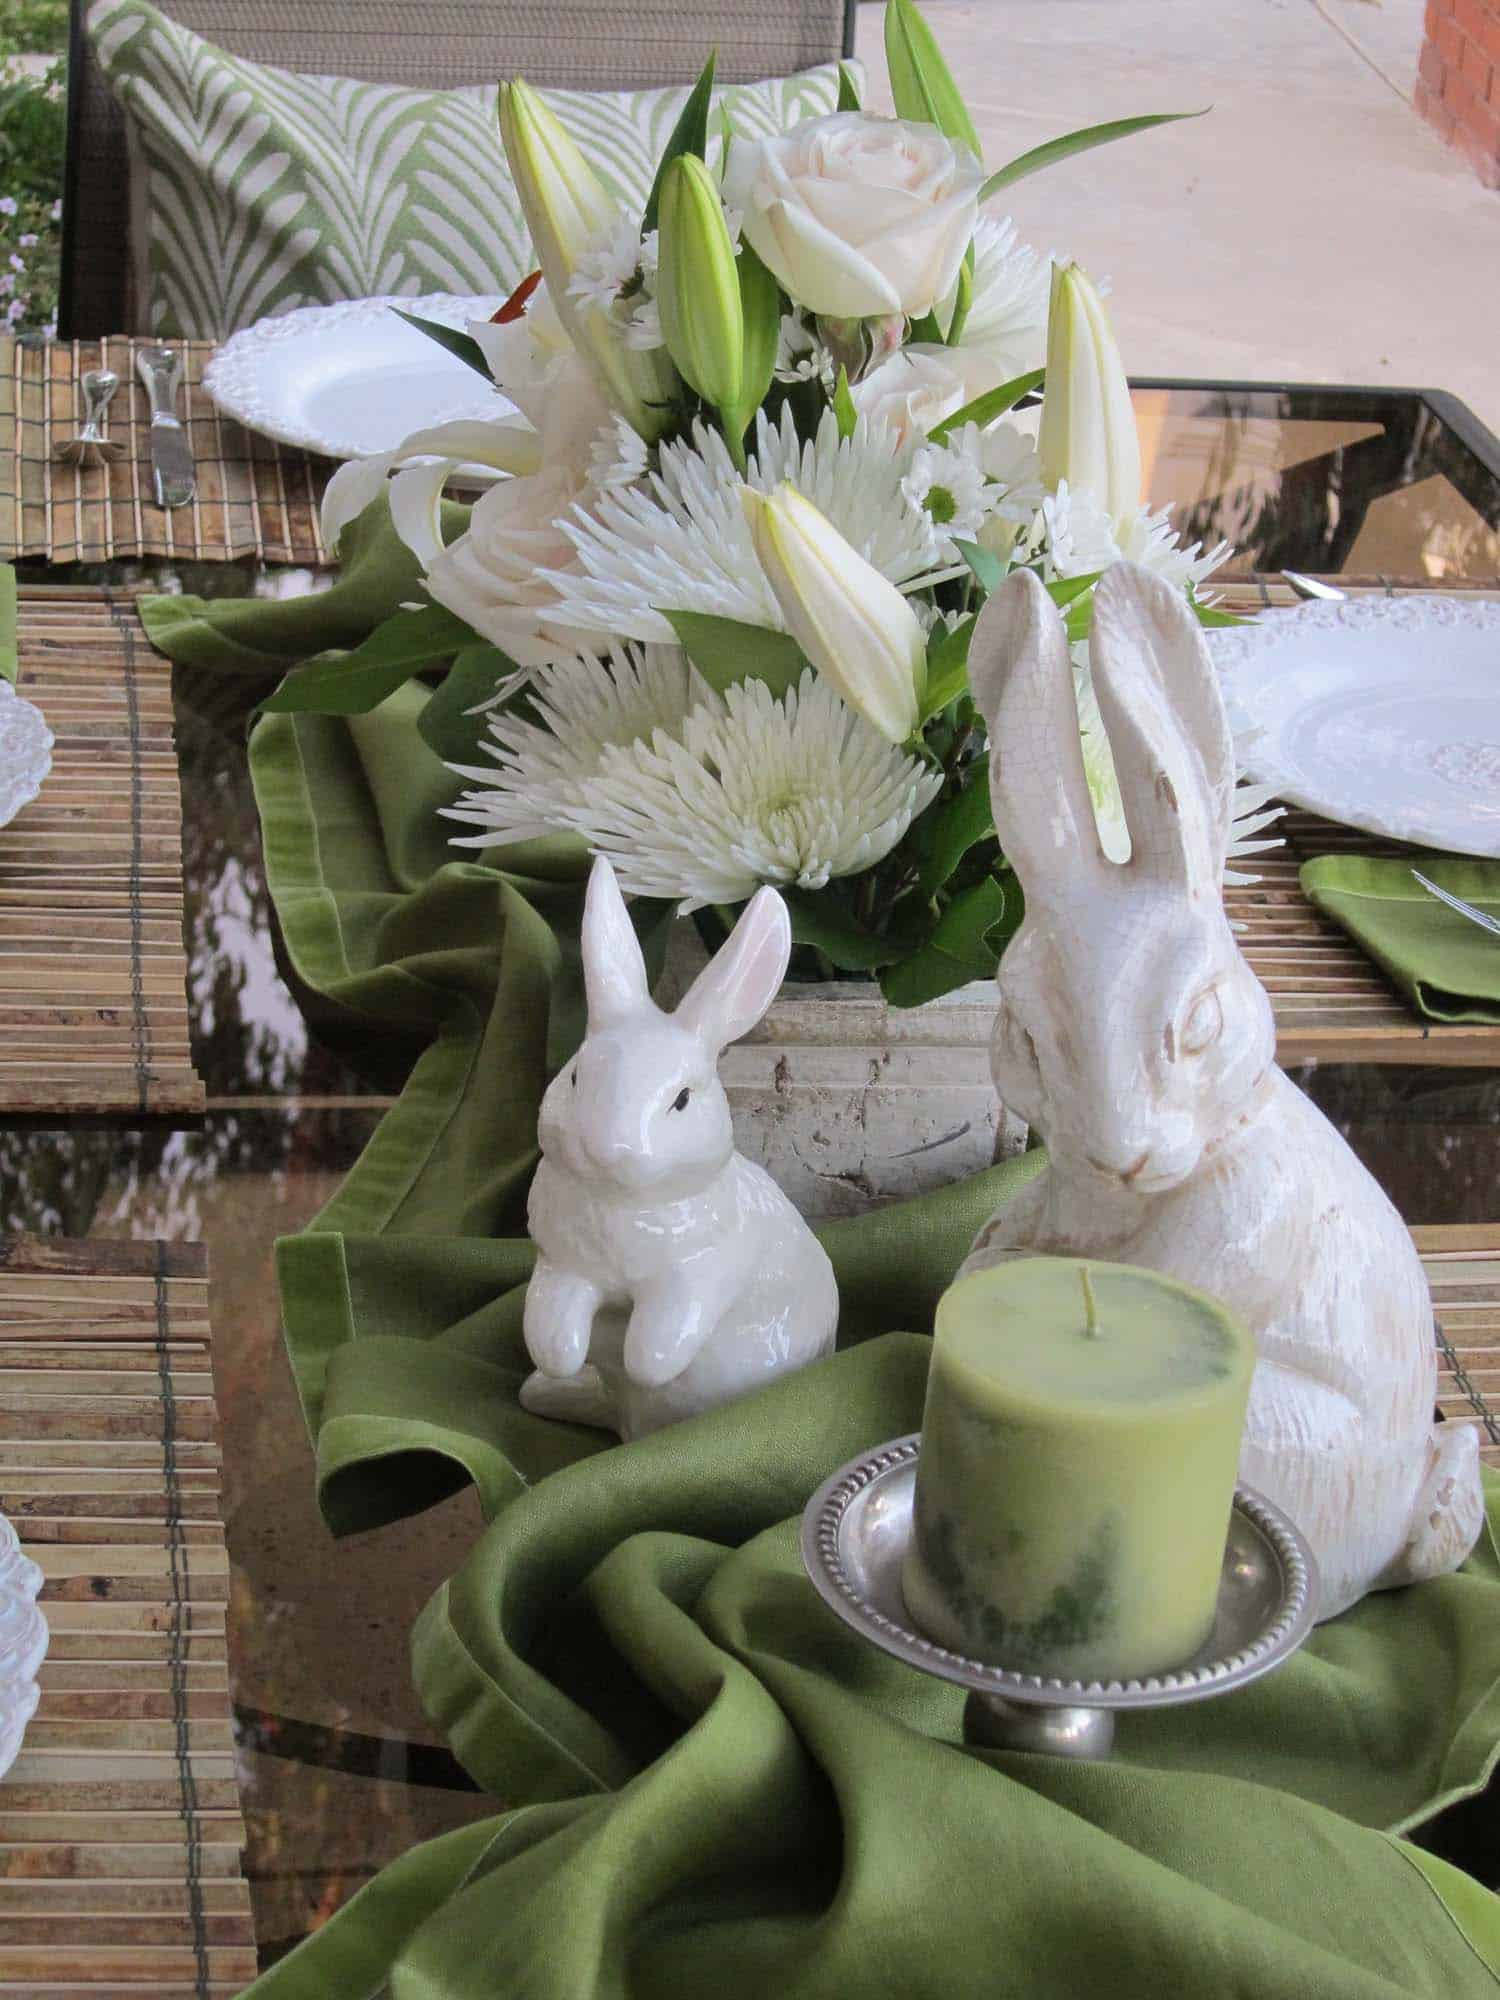 Inspiring Easter Table Centerpiece Ideas-23-1 Kindesign